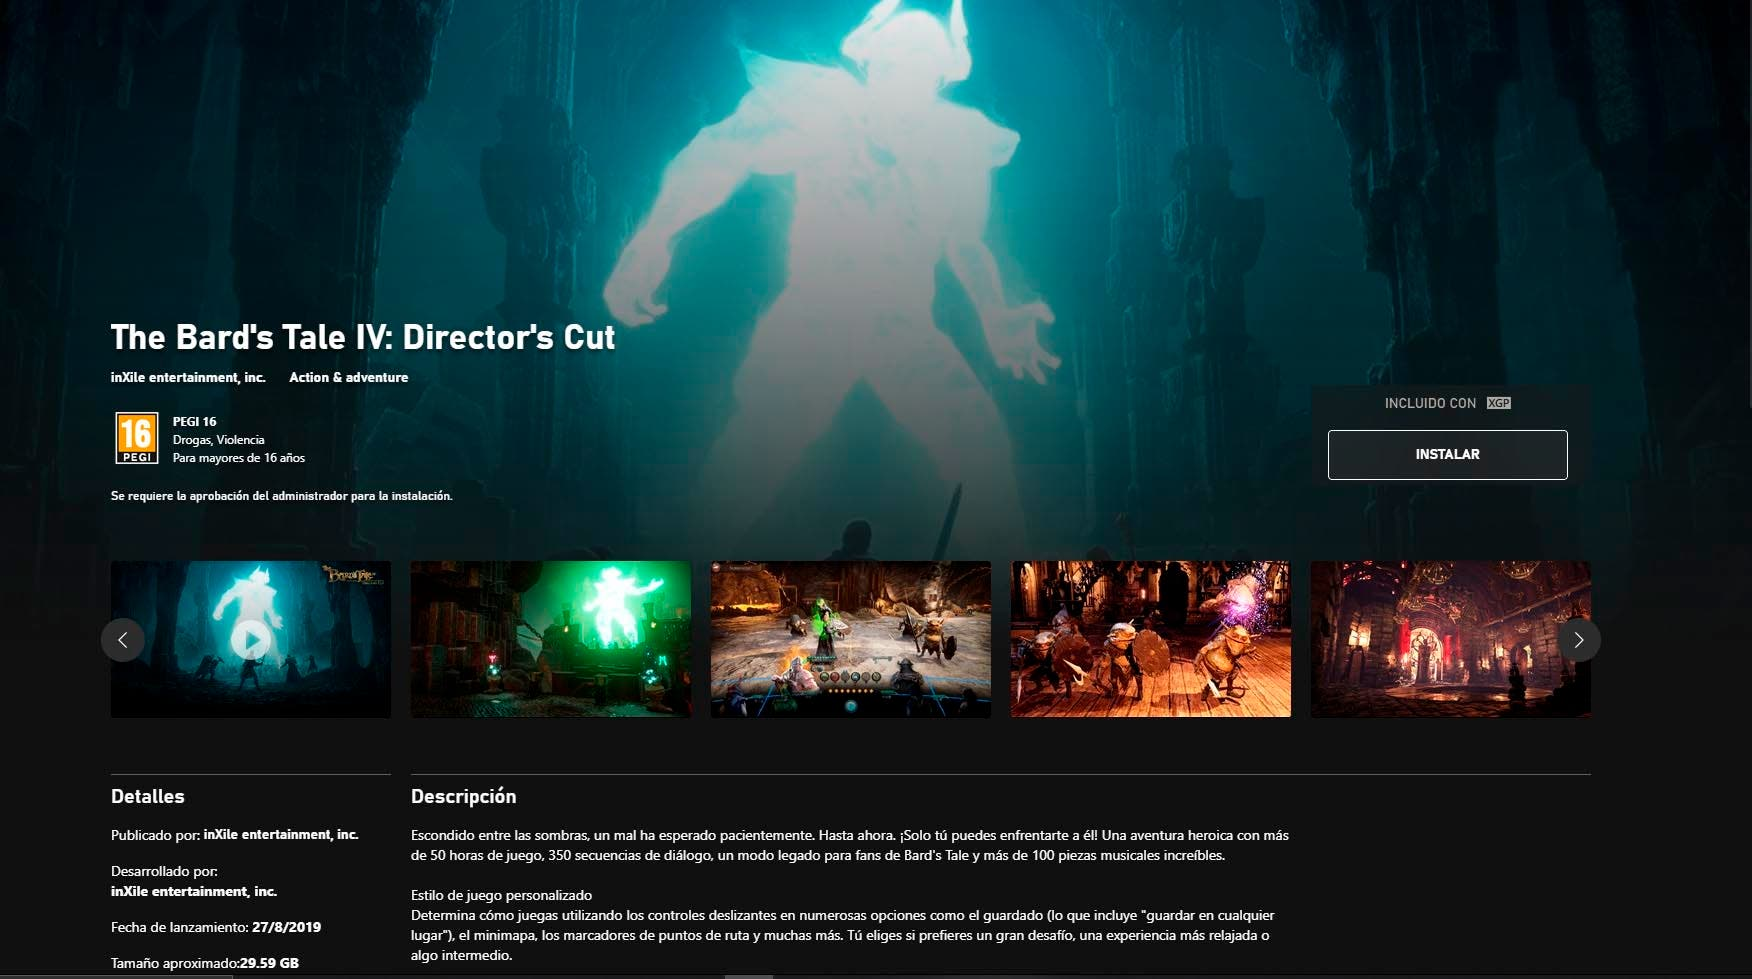 [ACTUALIZADA] The Bard's Tale IV: Director's Cut ya se encuentra disponible en Xbox Game Pass